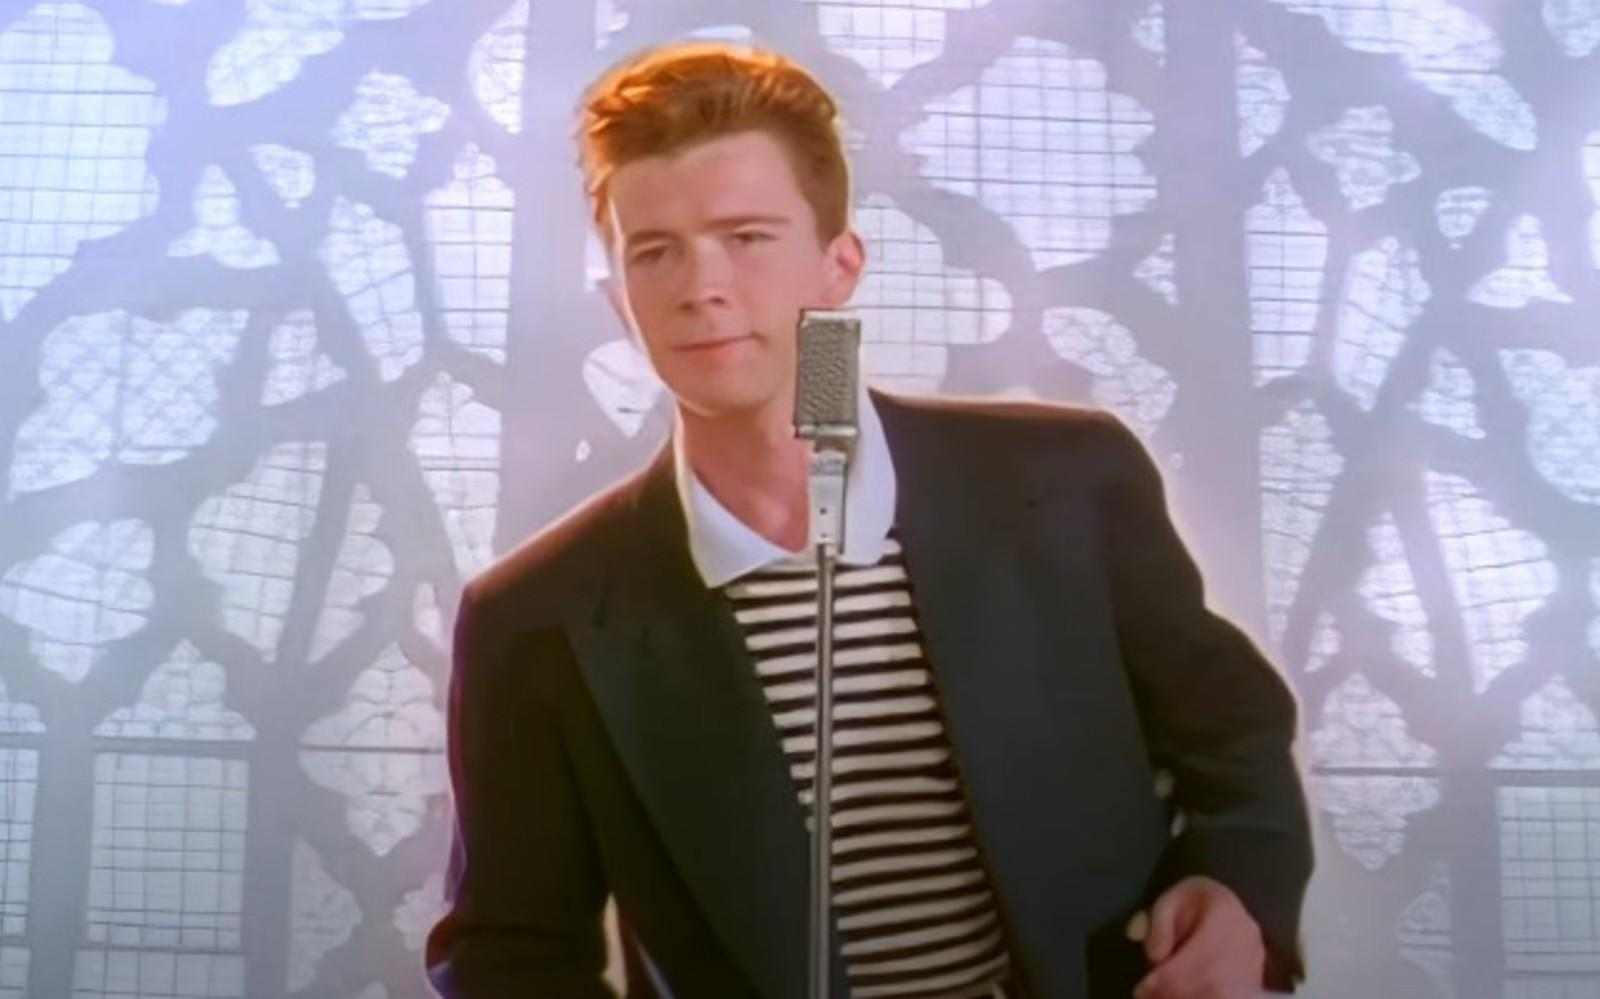 AI has remastered Rick Astley's 'Never Gonna Give You Up' in glorious 4K   Engadget